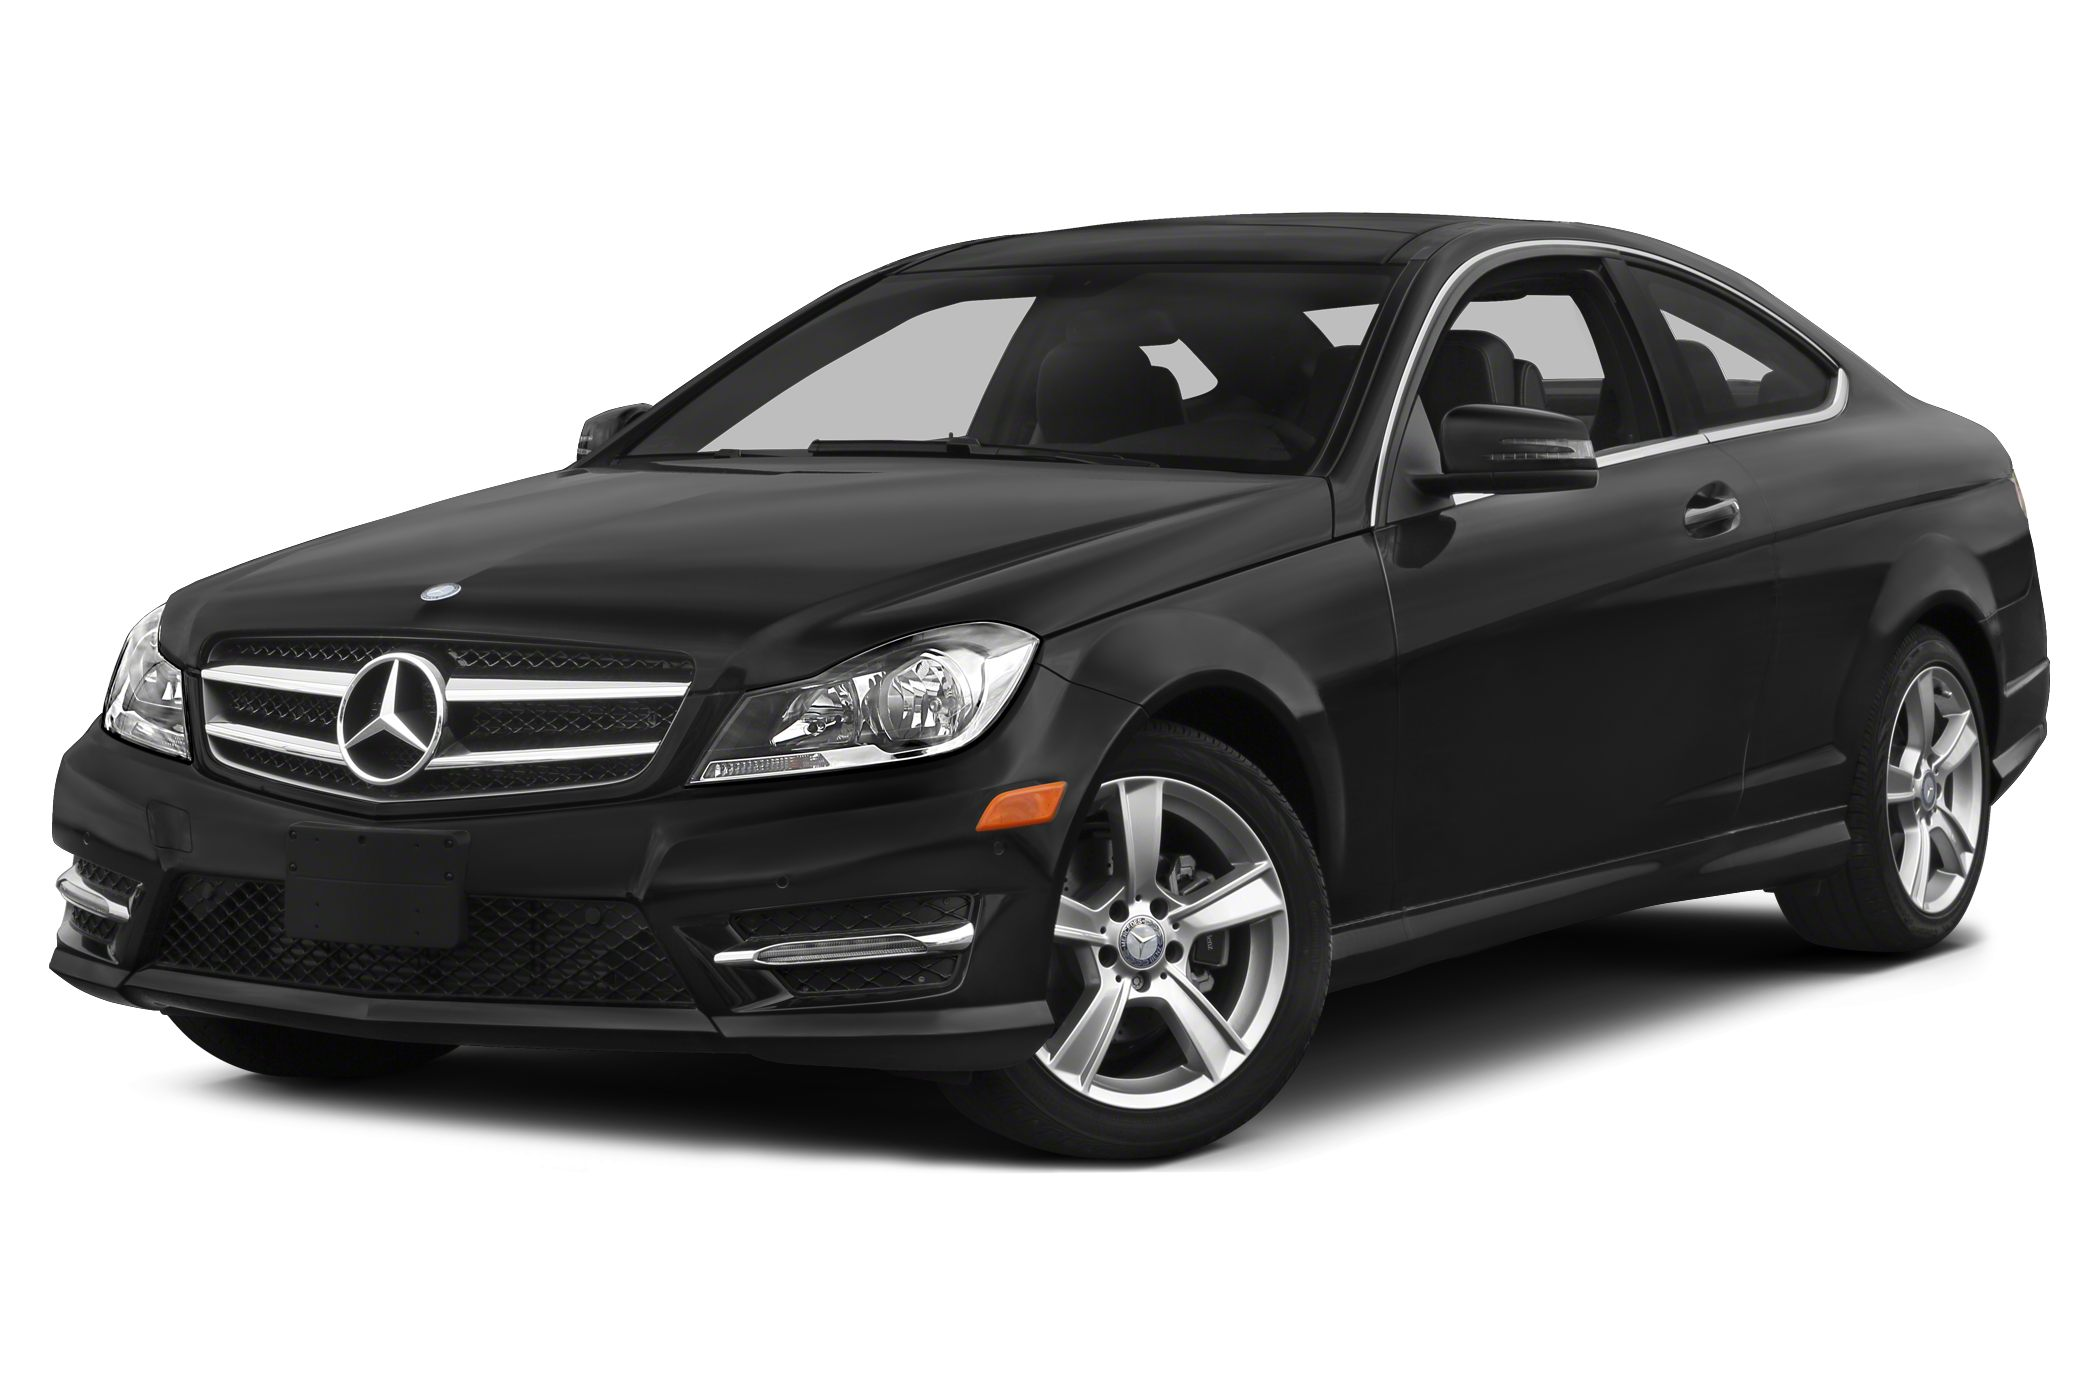 2015 Mercedes-Benz C-Class C250 Coupe for sale in Newport Beach for $44,920 with 8 miles.